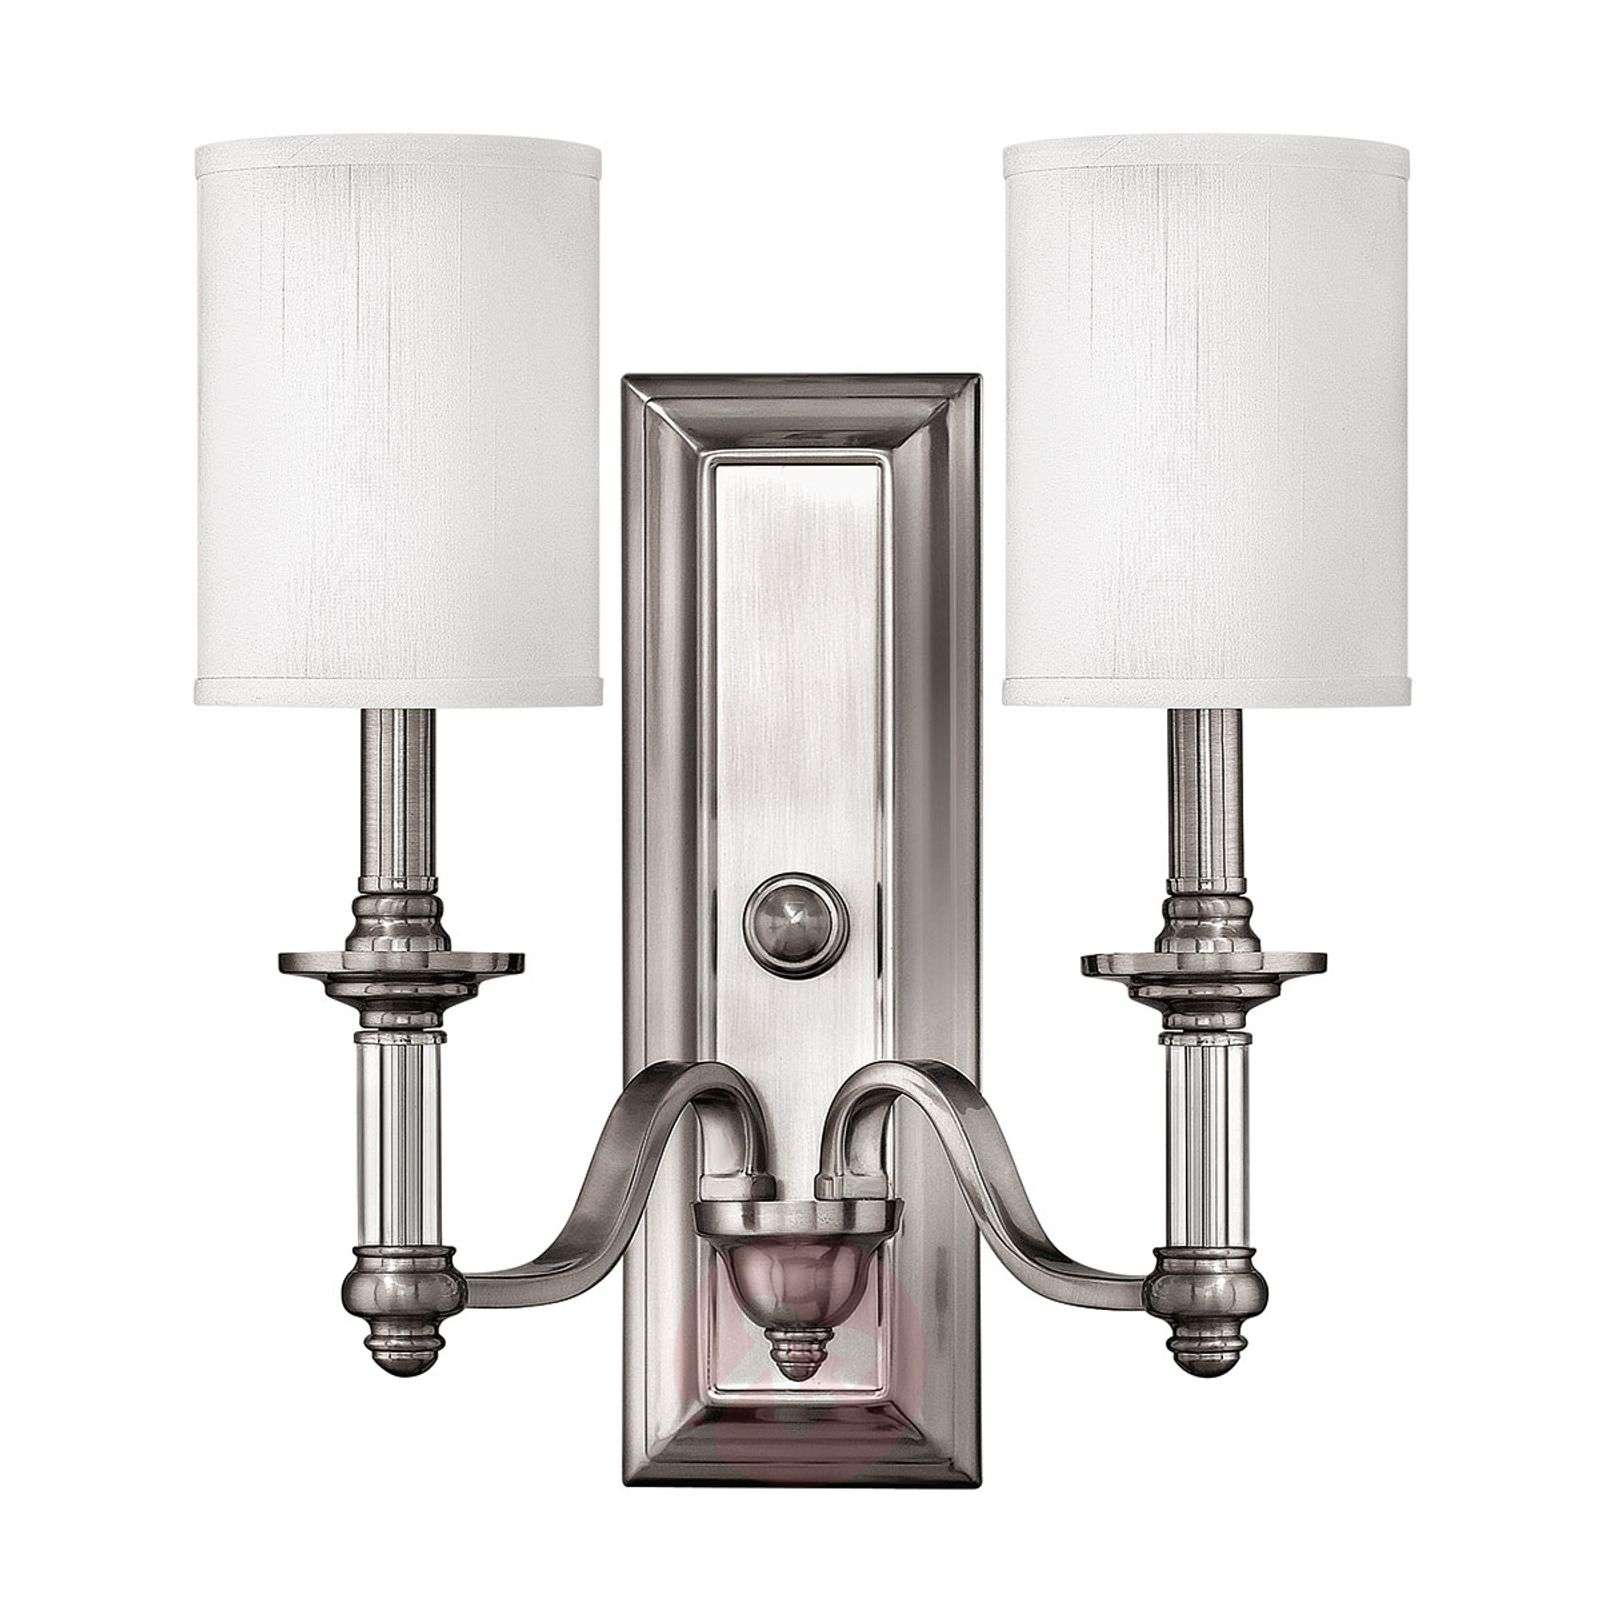 Two-bulb wall lamp Sussex, brushed nickel-3048890-01